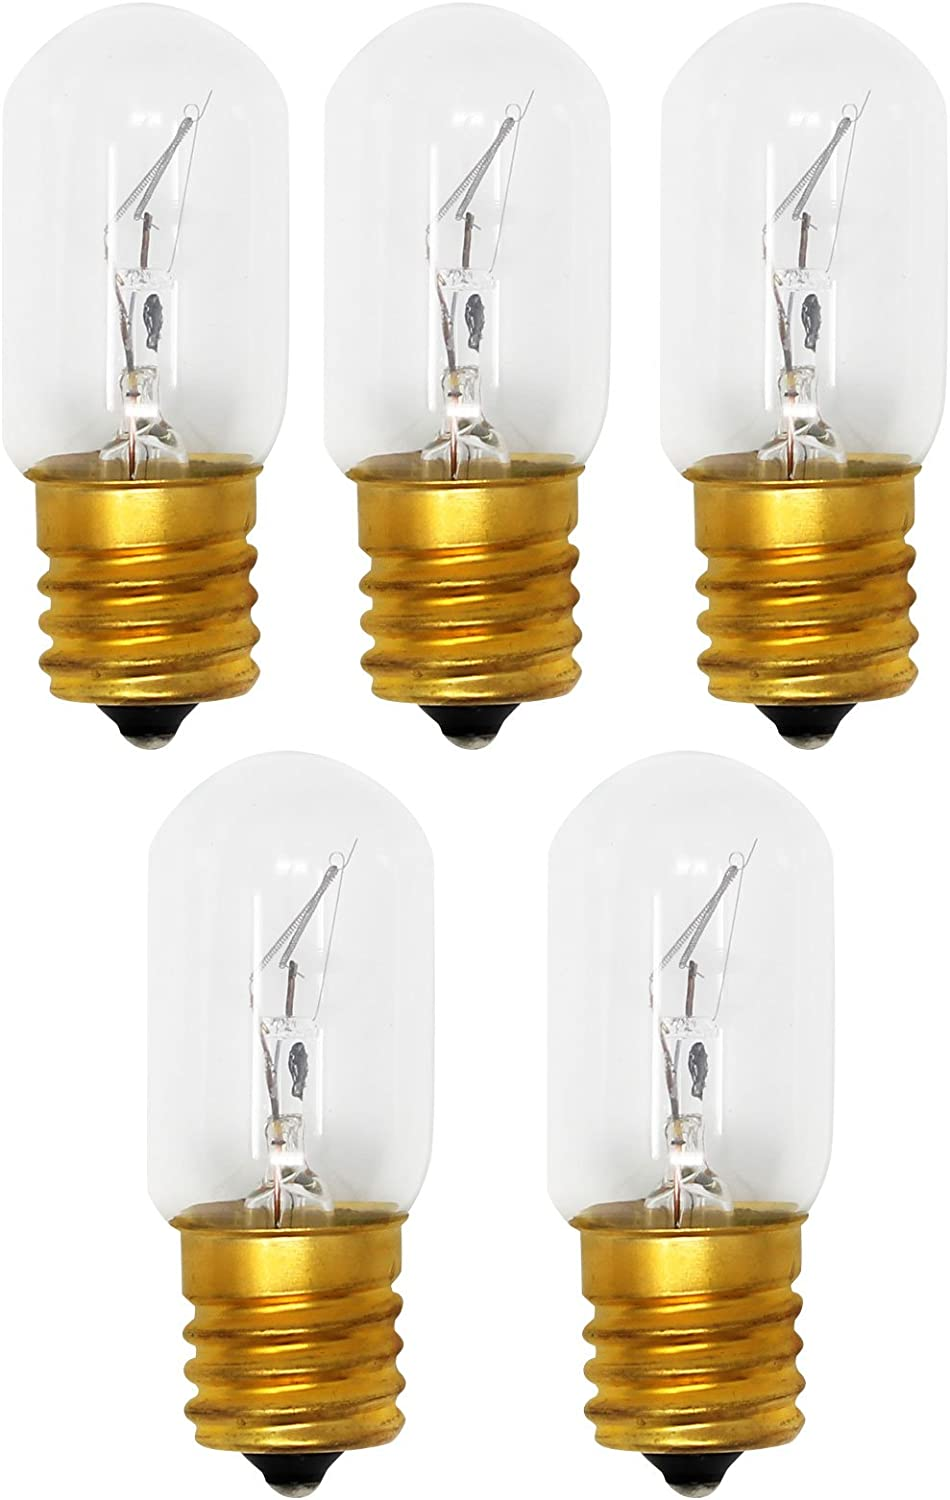 5-Pack Replacement Light Bulb for Whirlpool WMH31017AS1 Microwave - Compatible Whirlpool 8206232A Light Bulb